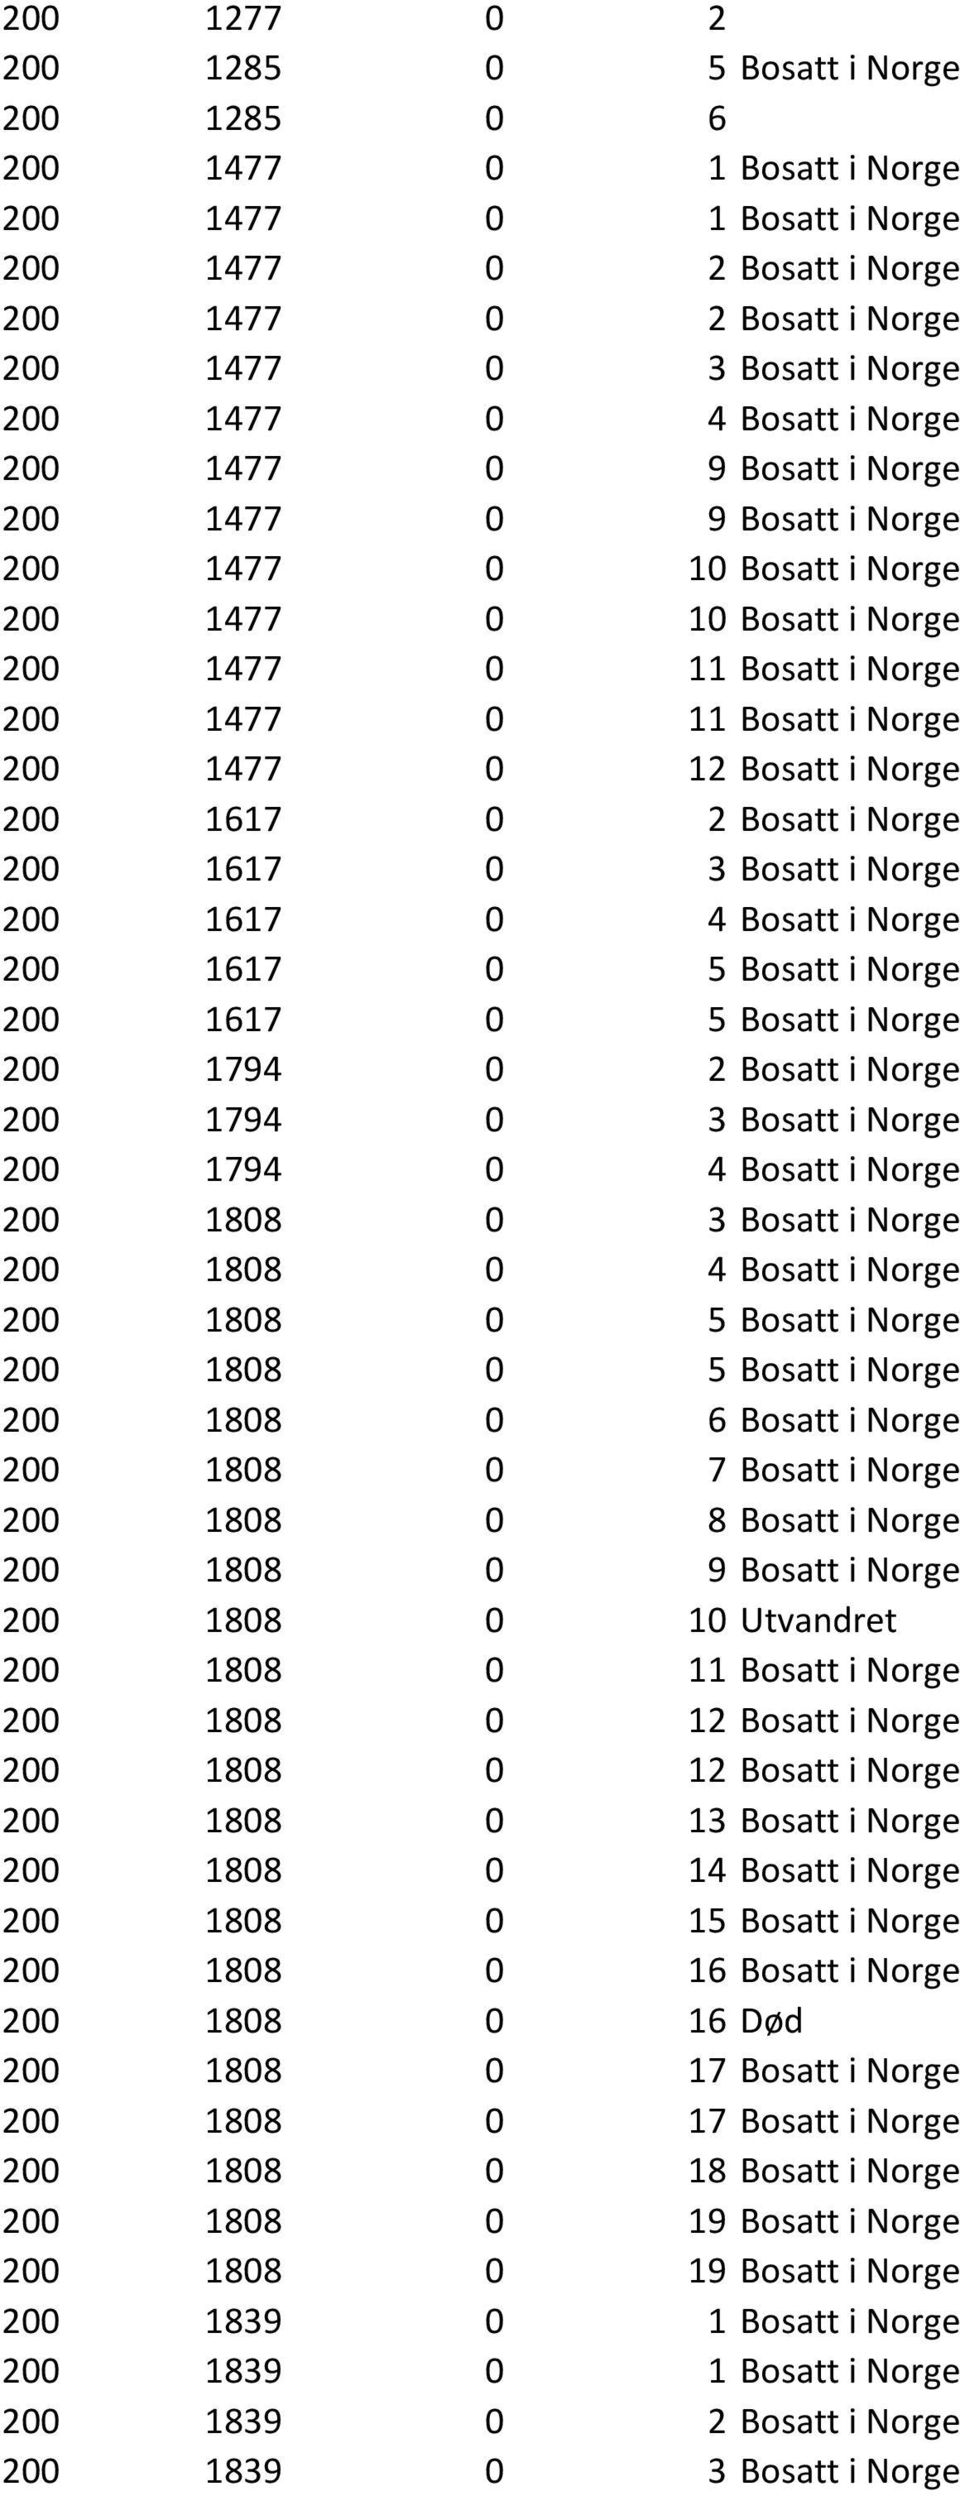 1477 0 12 Bosatt i Norge 200 1617 0 2 Bosatt i Norge 200 1617 0 3 Bosatt i Norge 200 1617 0 4 Bosatt i Norge 200 1617 0 5 Bosatt i Norge 200 1617 0 5 Bosatt i Norge 200 1794 0 2 Bosatt i Norge 200